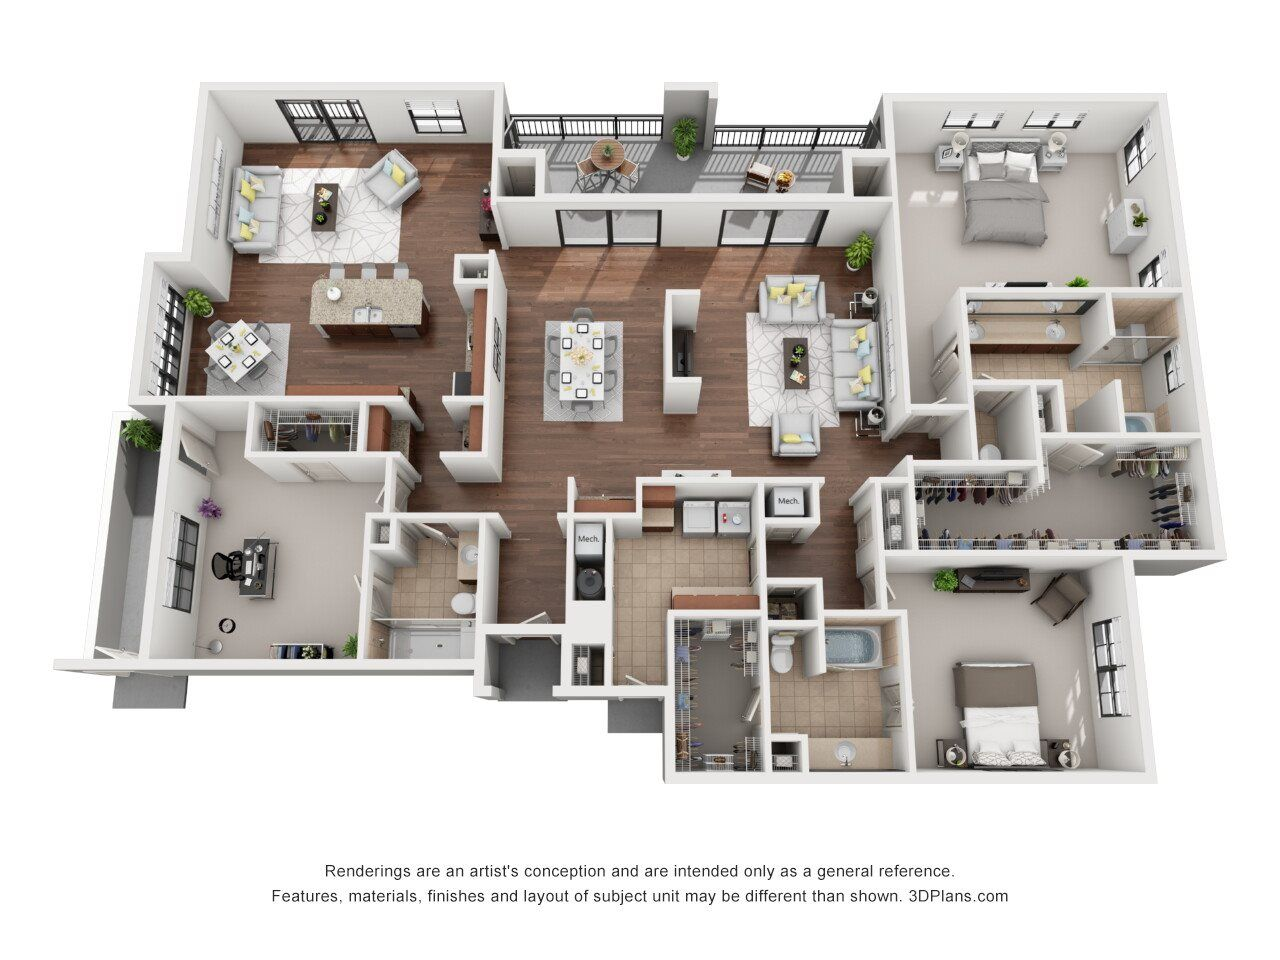 Floor Plans Of Artessa At Quarry Village In San Antonio Tx In 2021 House Layout Plans Home Building Design Sims House Plans